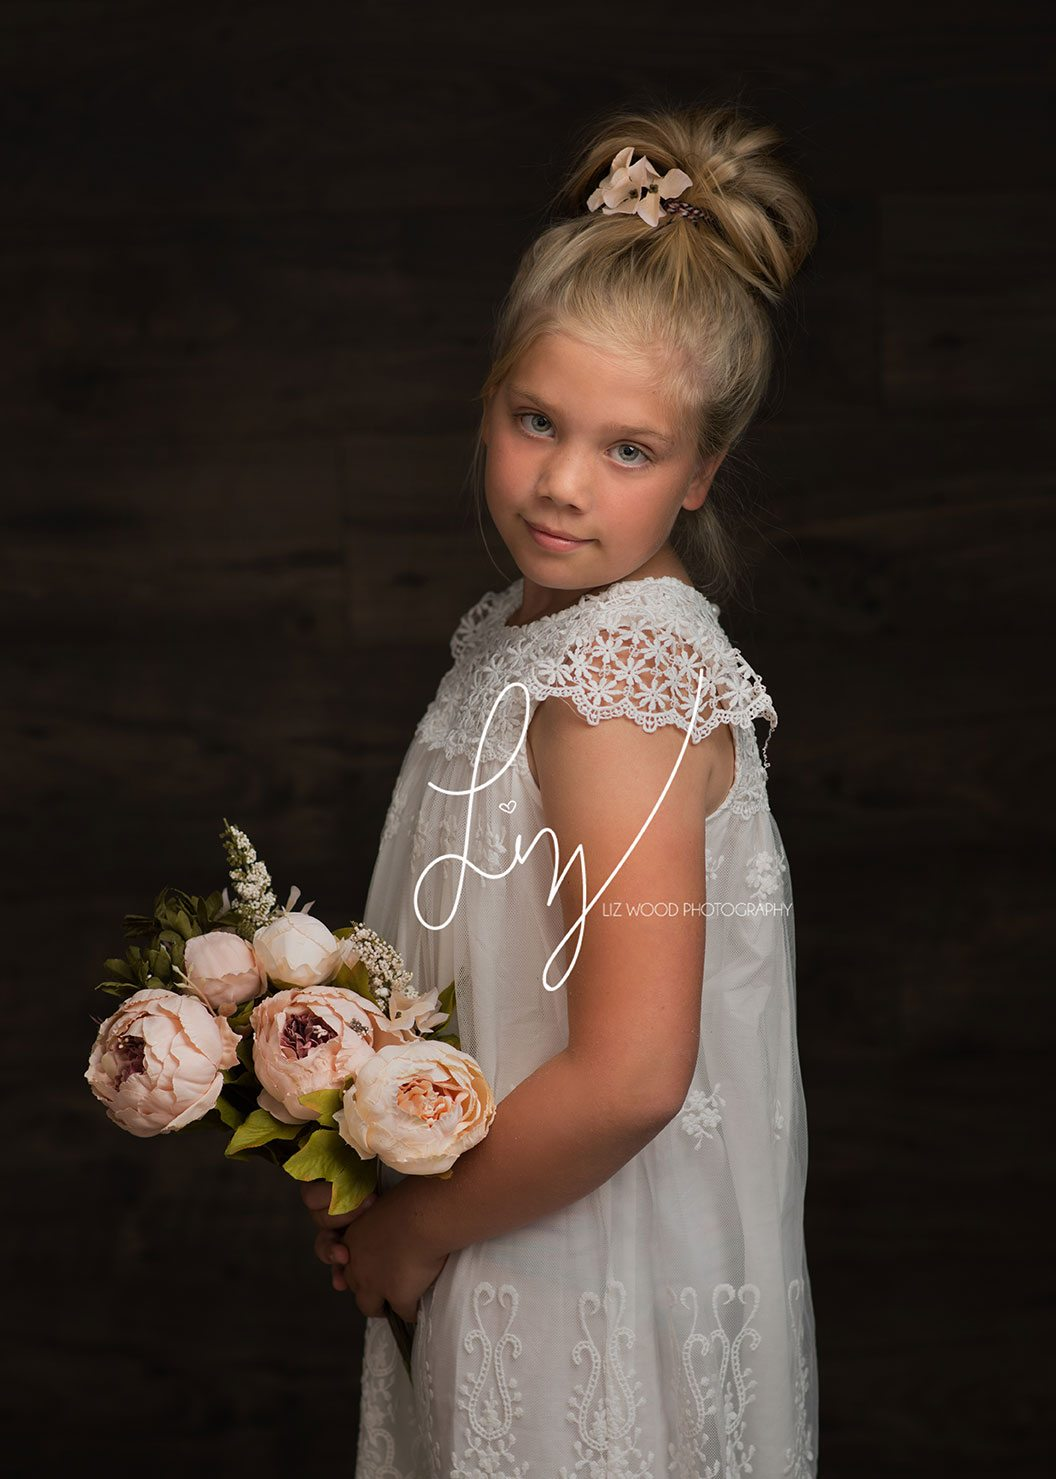 Studio fine art child, family and baby photographer in Essex, Cambridge, Suffolk and London.